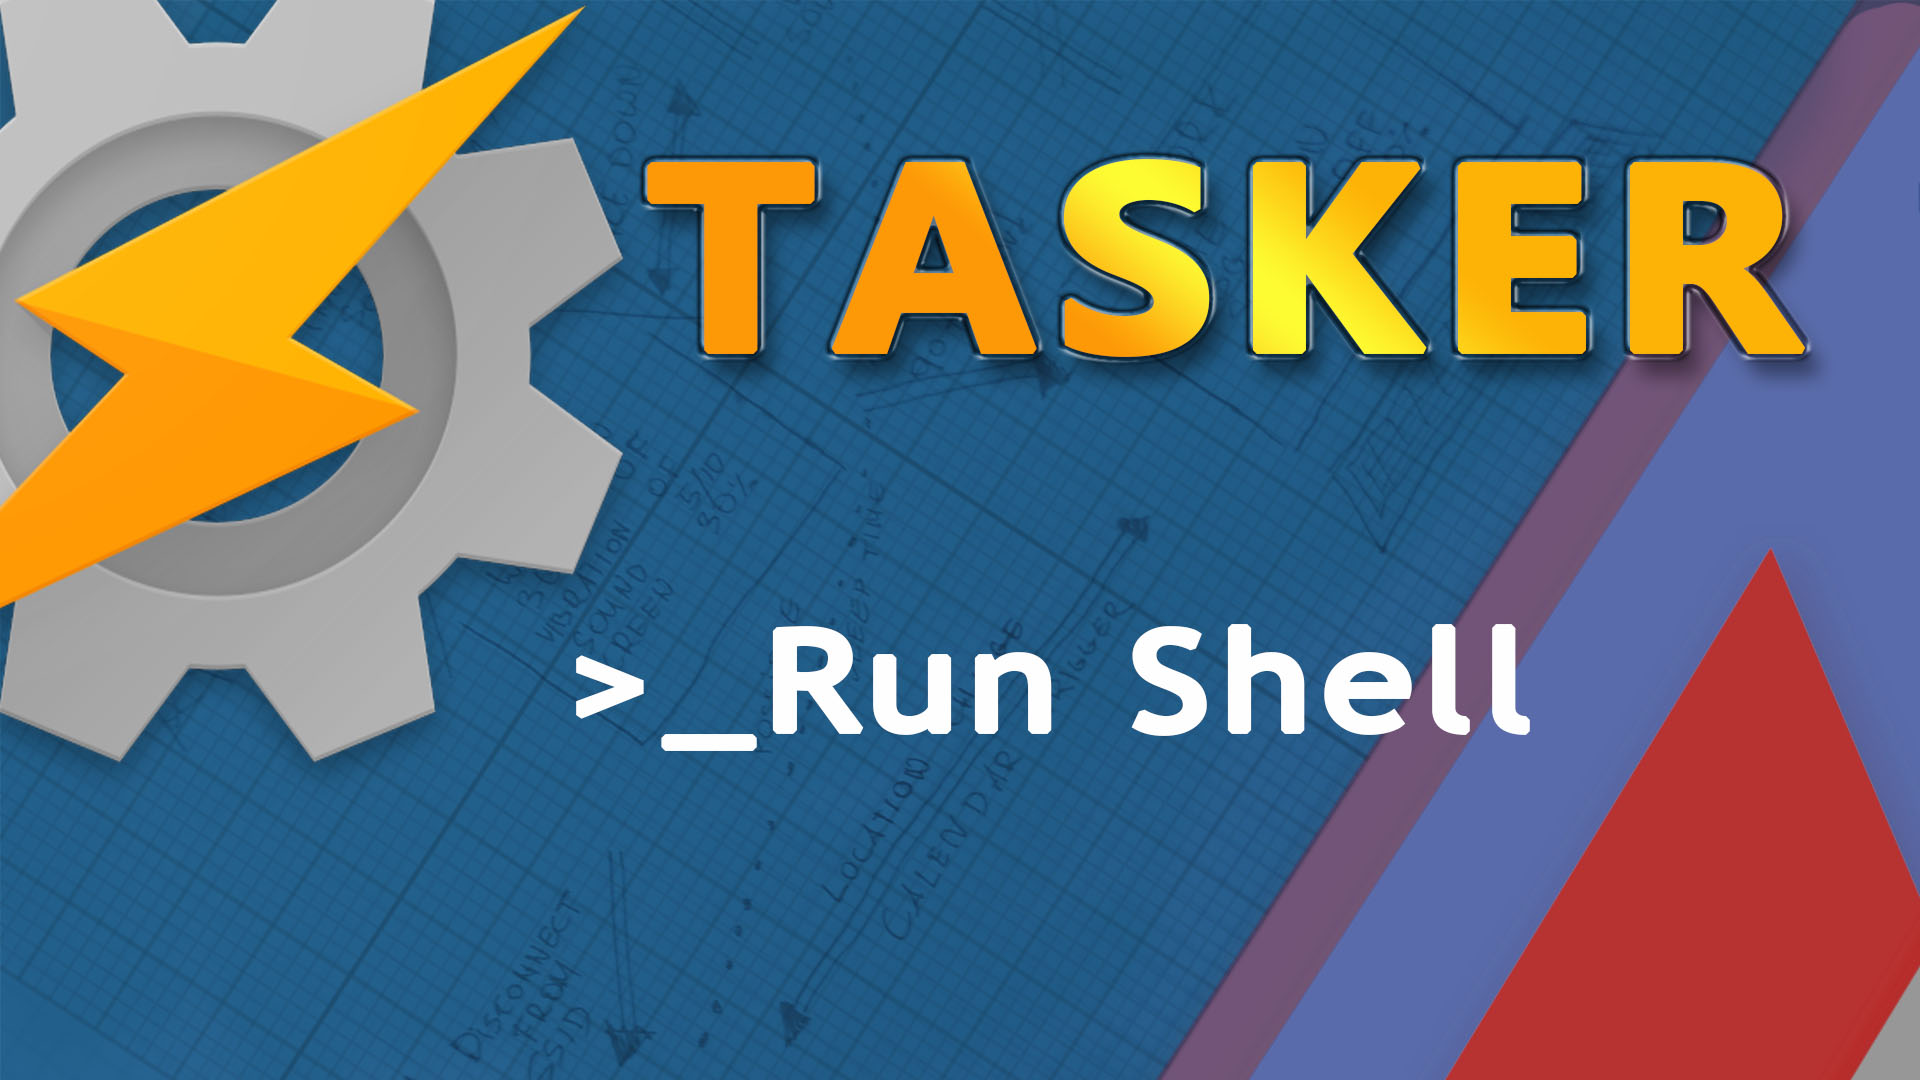 Best run shell commands in Tasker - Not Enough TECH